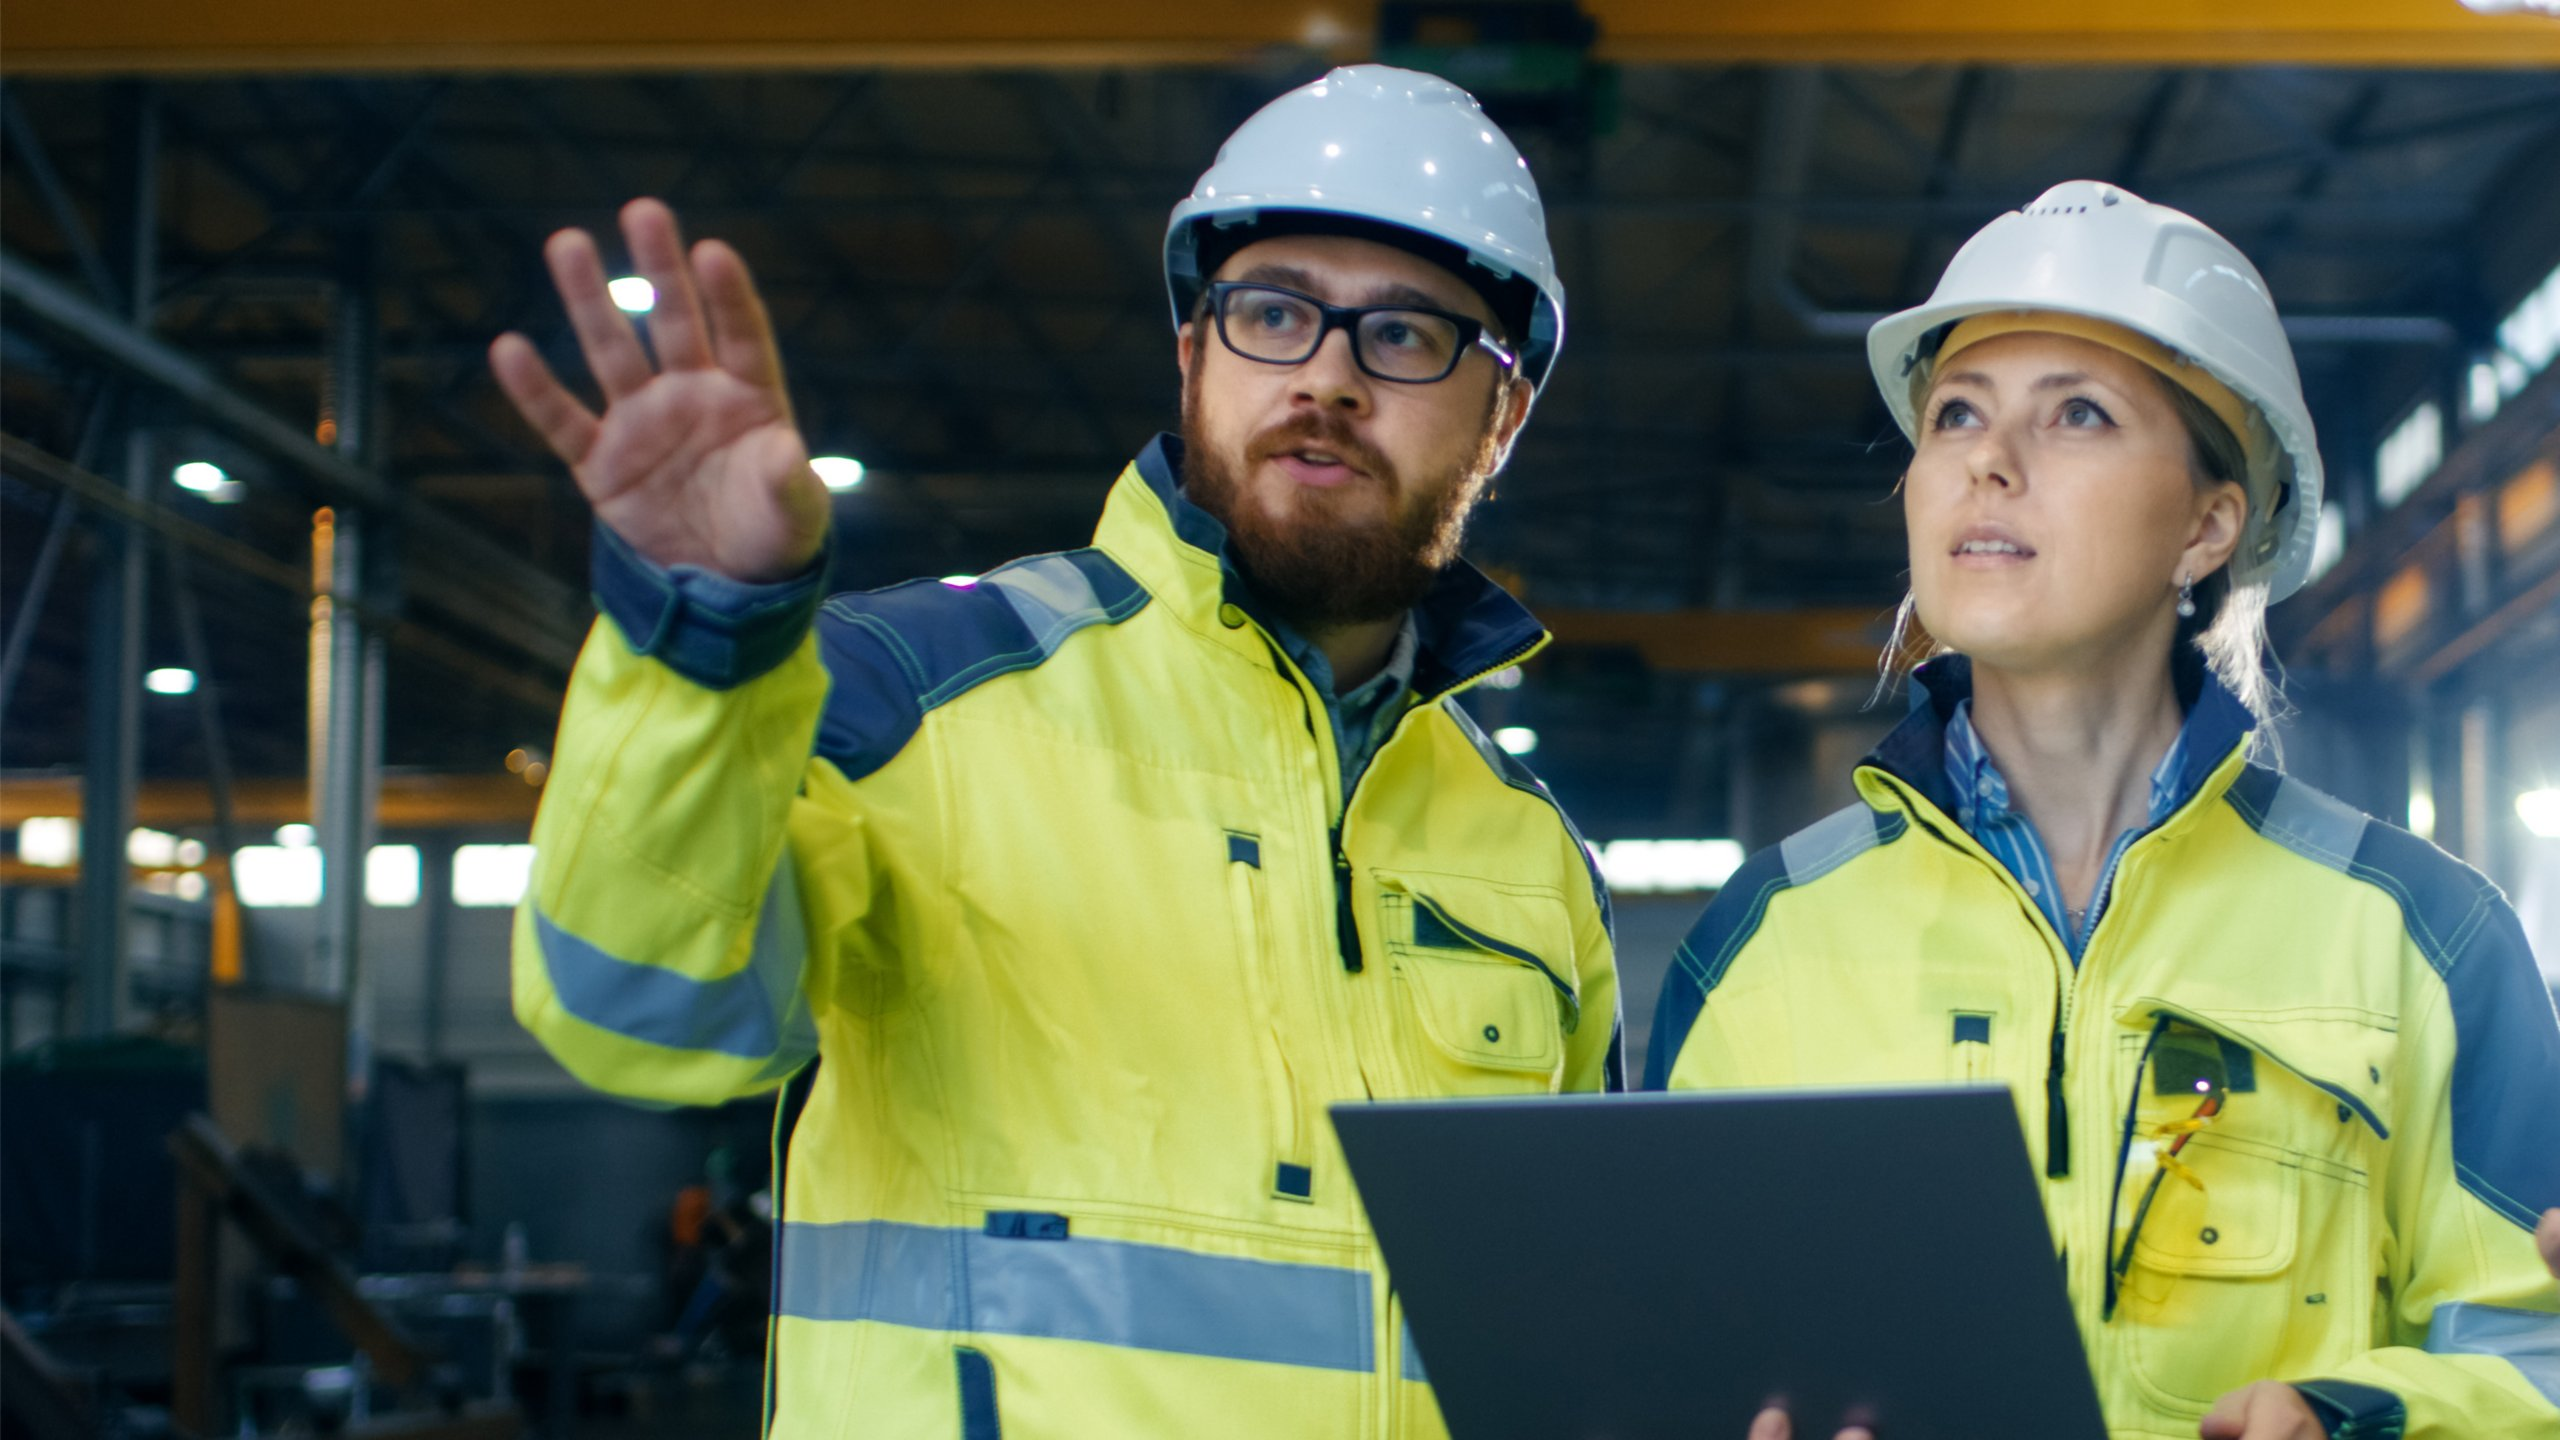 Man on left, woman on right in a manufacturing environment having a discussion while looking at a tablet. Both are wearing yellow safety coats and white hard hats.